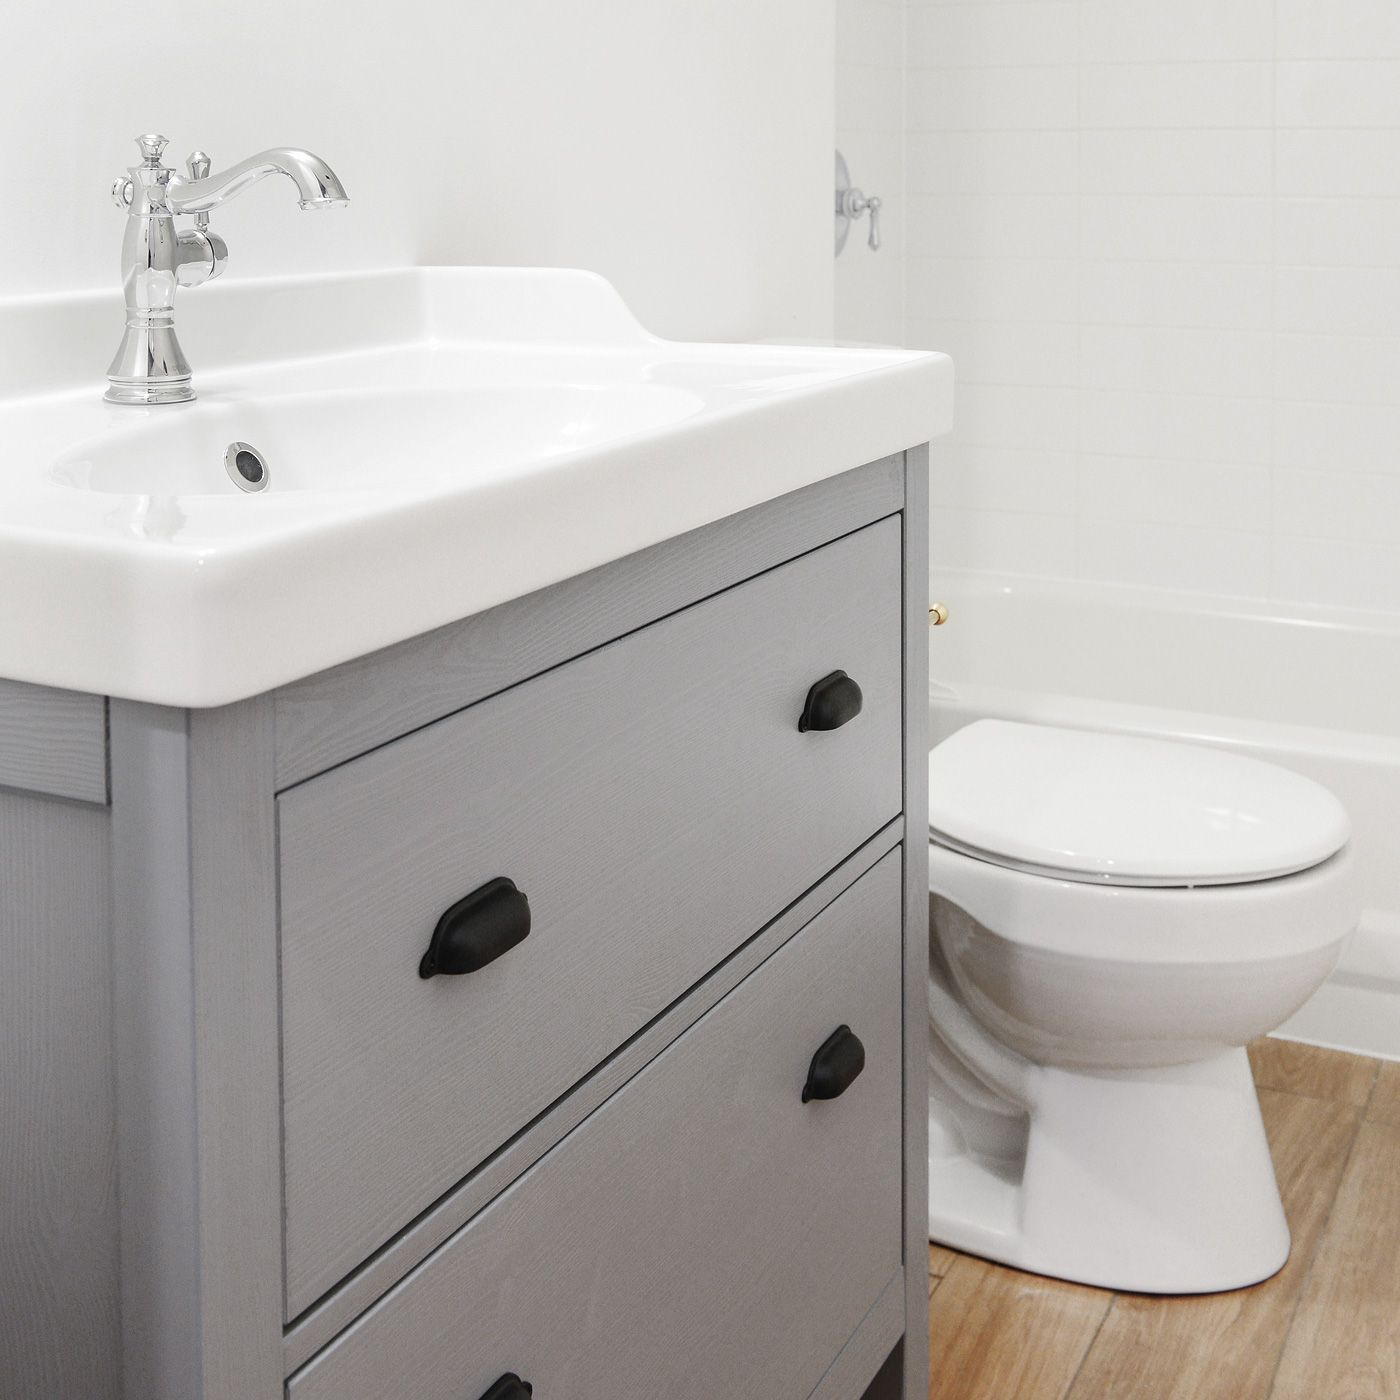 Photo of What Makes an IKEA Vanity Stand Out Above the Rest